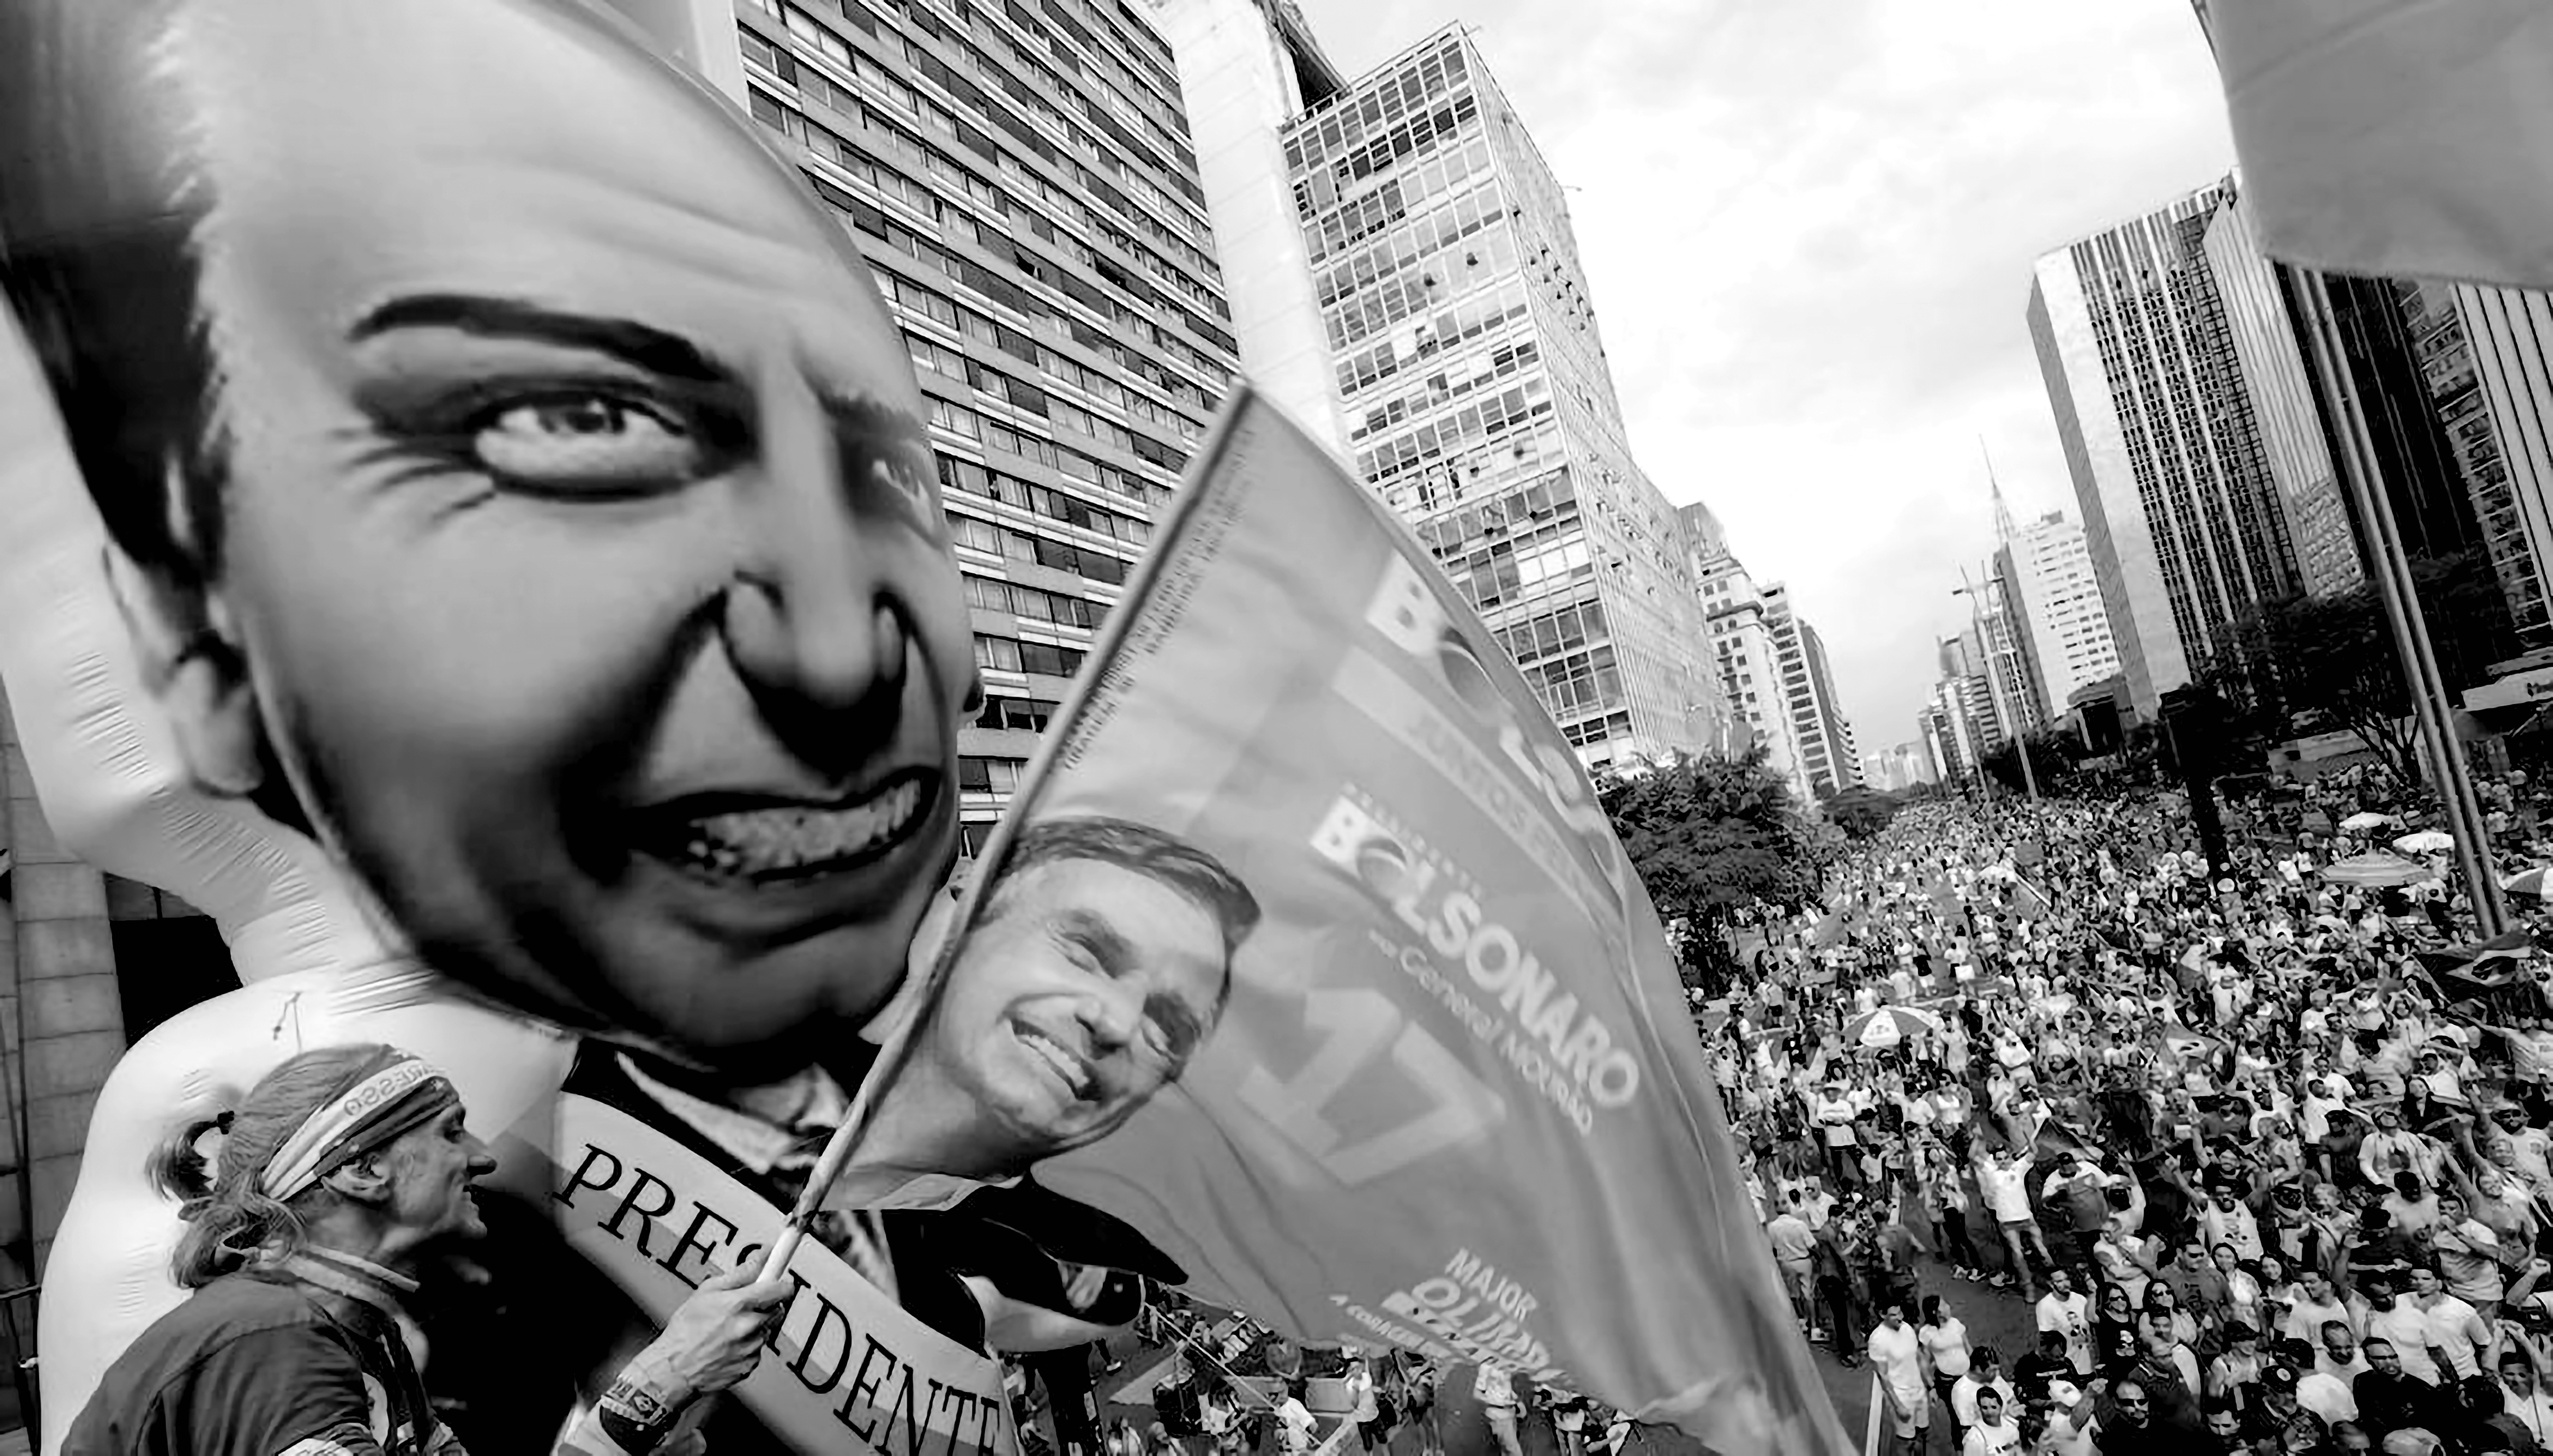 PT and Bolsonaro: from the Normalization of an Anomy to the